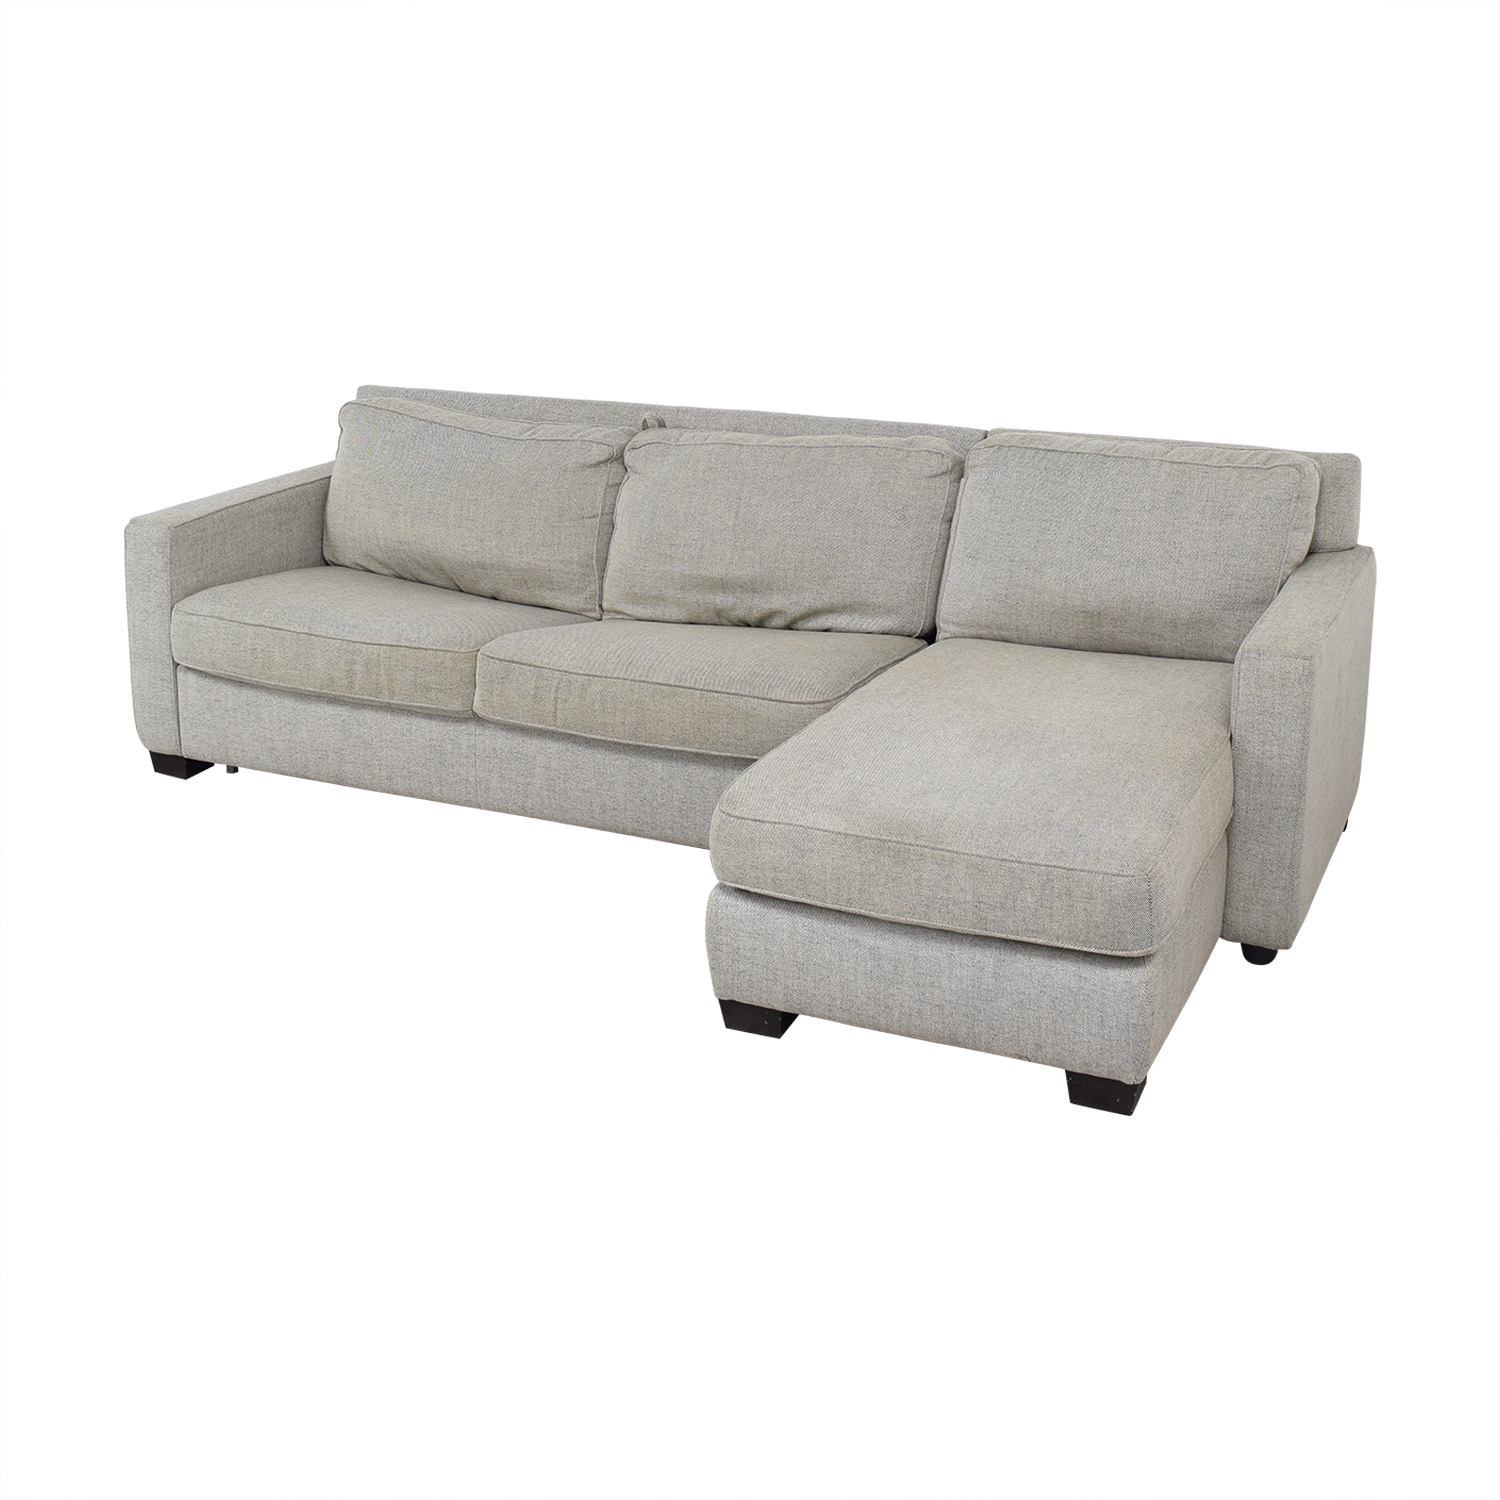 Phenomenal 43 Off West Elm West Elm Henry Two Piece Full Sleeper Sectional With Storage Sofas Alphanode Cool Chair Designs And Ideas Alphanodeonline